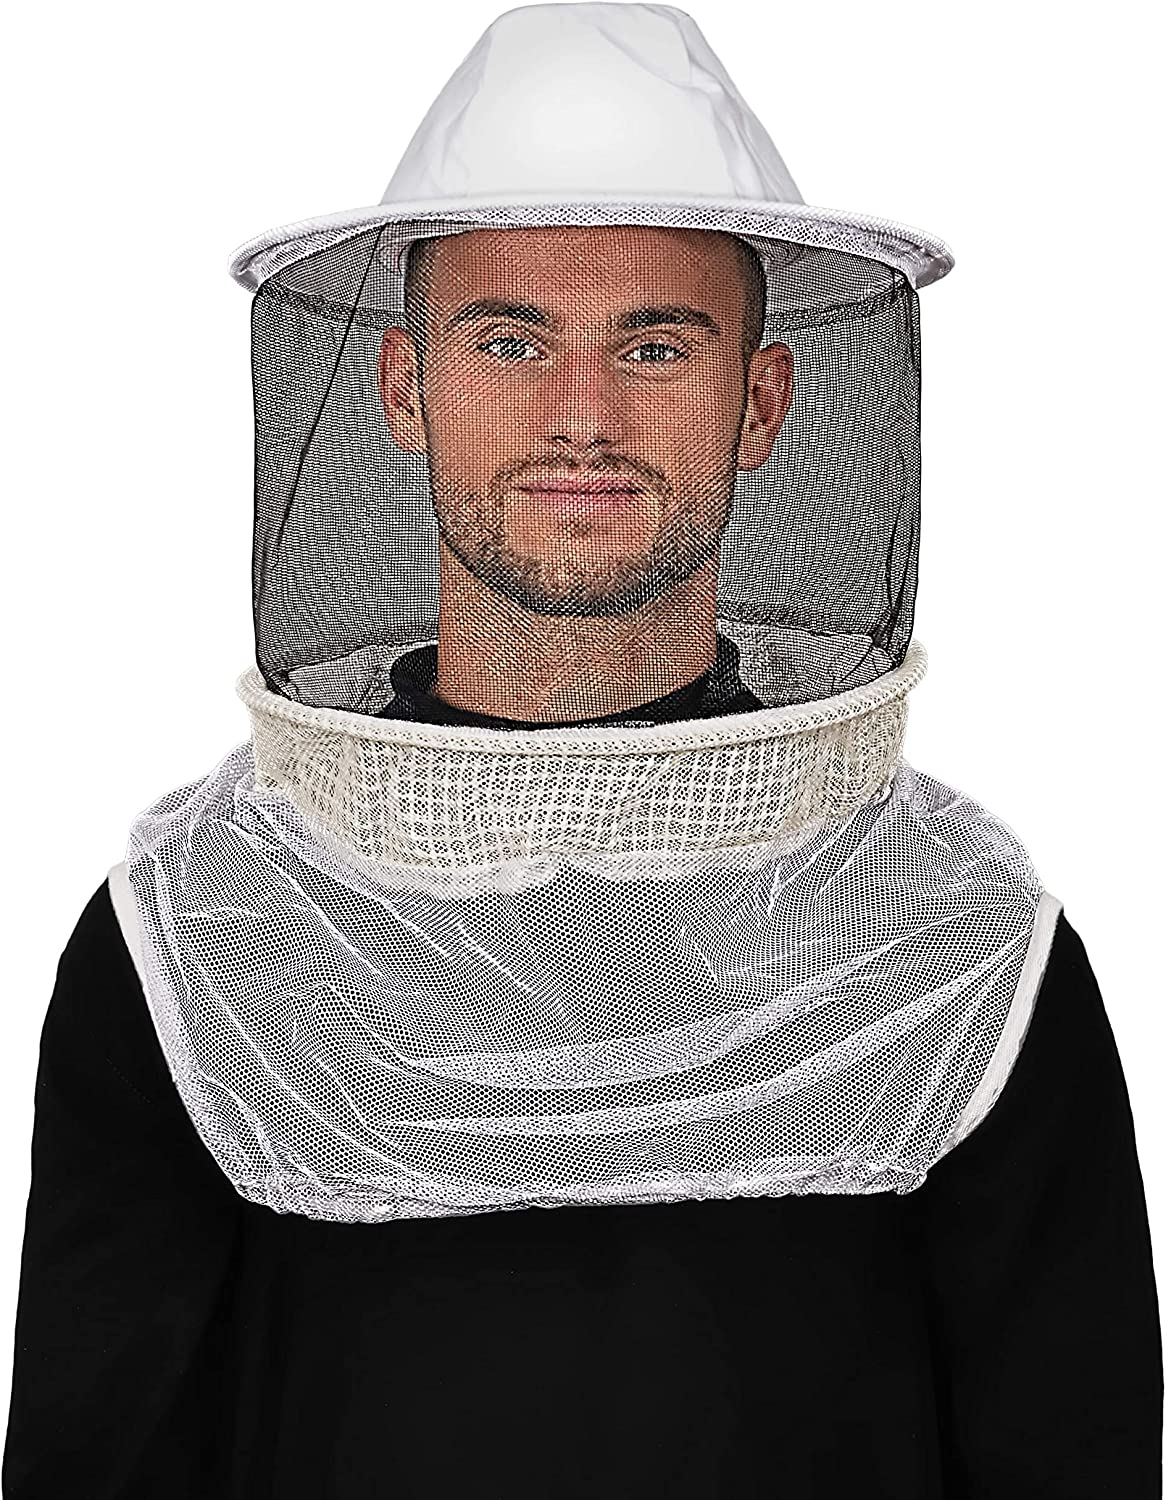 poly-cotton with fencing veil beekeeping hat Humble Bee 11